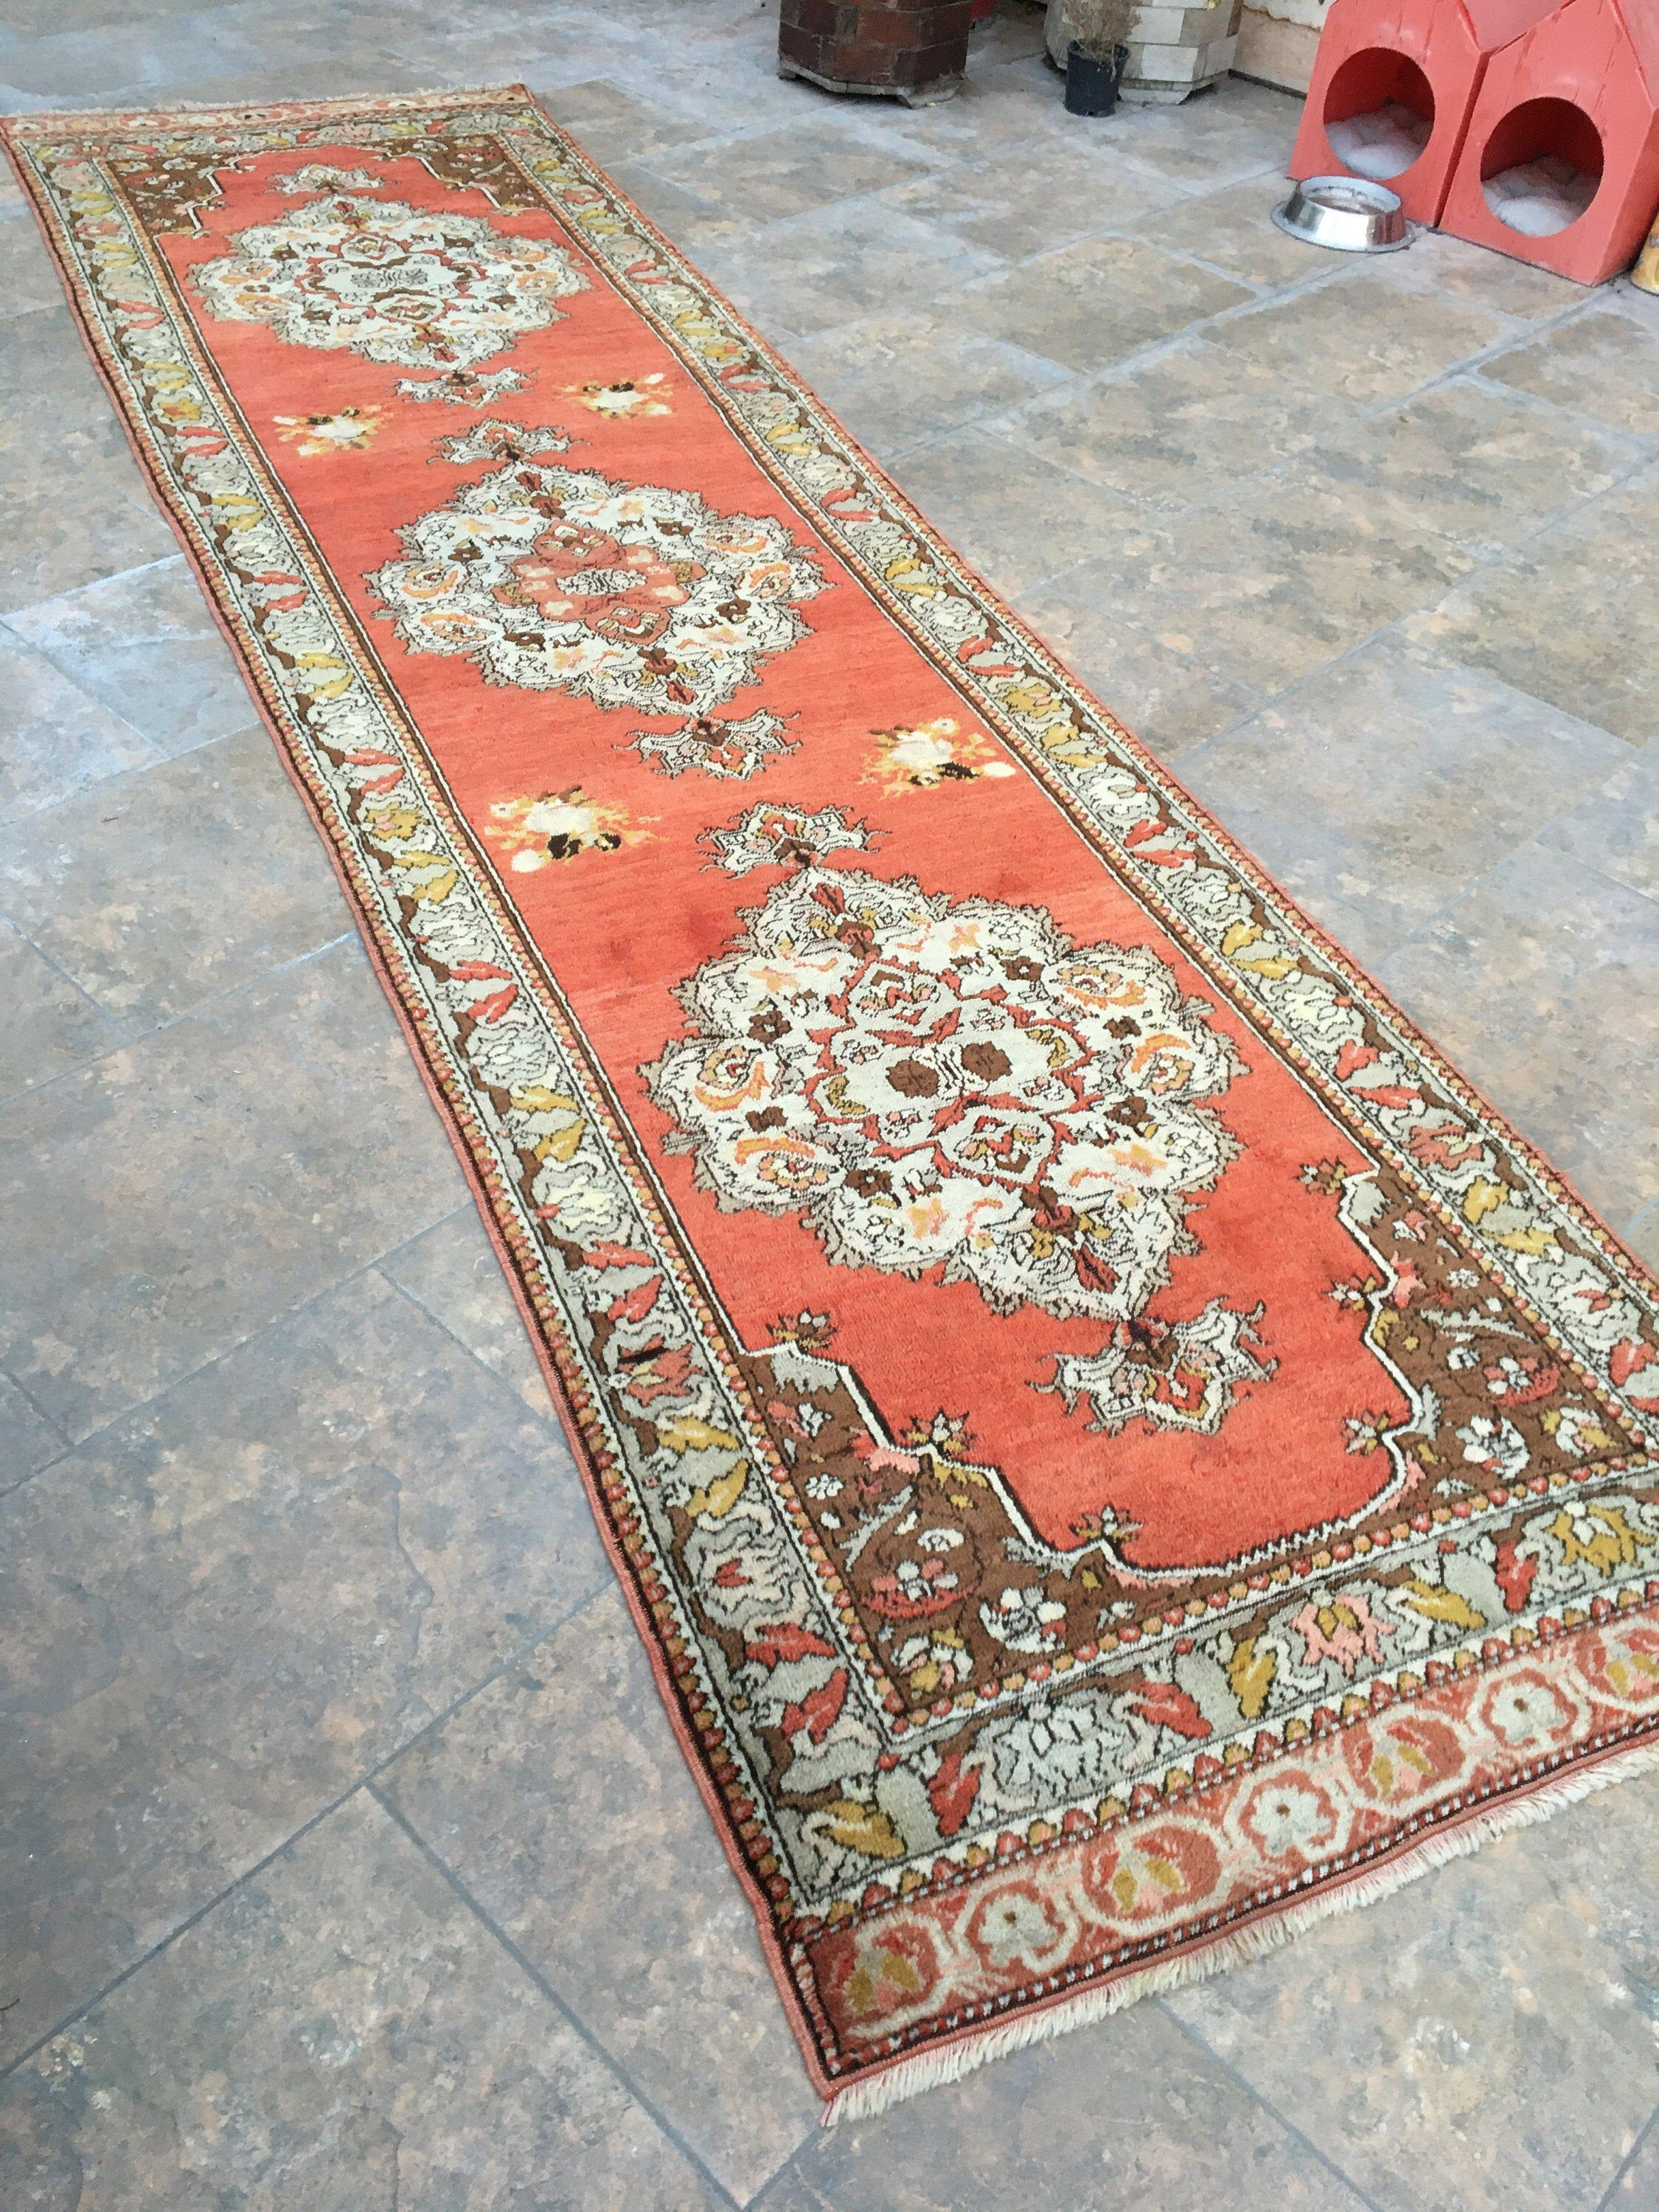 Antique Rug Rugs Runner Turkish Runner Rug Vintage Rug Runner Hand Knotted Wool Runner Rug 12 Ft Long Runner Rugs 3 48 X12 76 Feet 2020